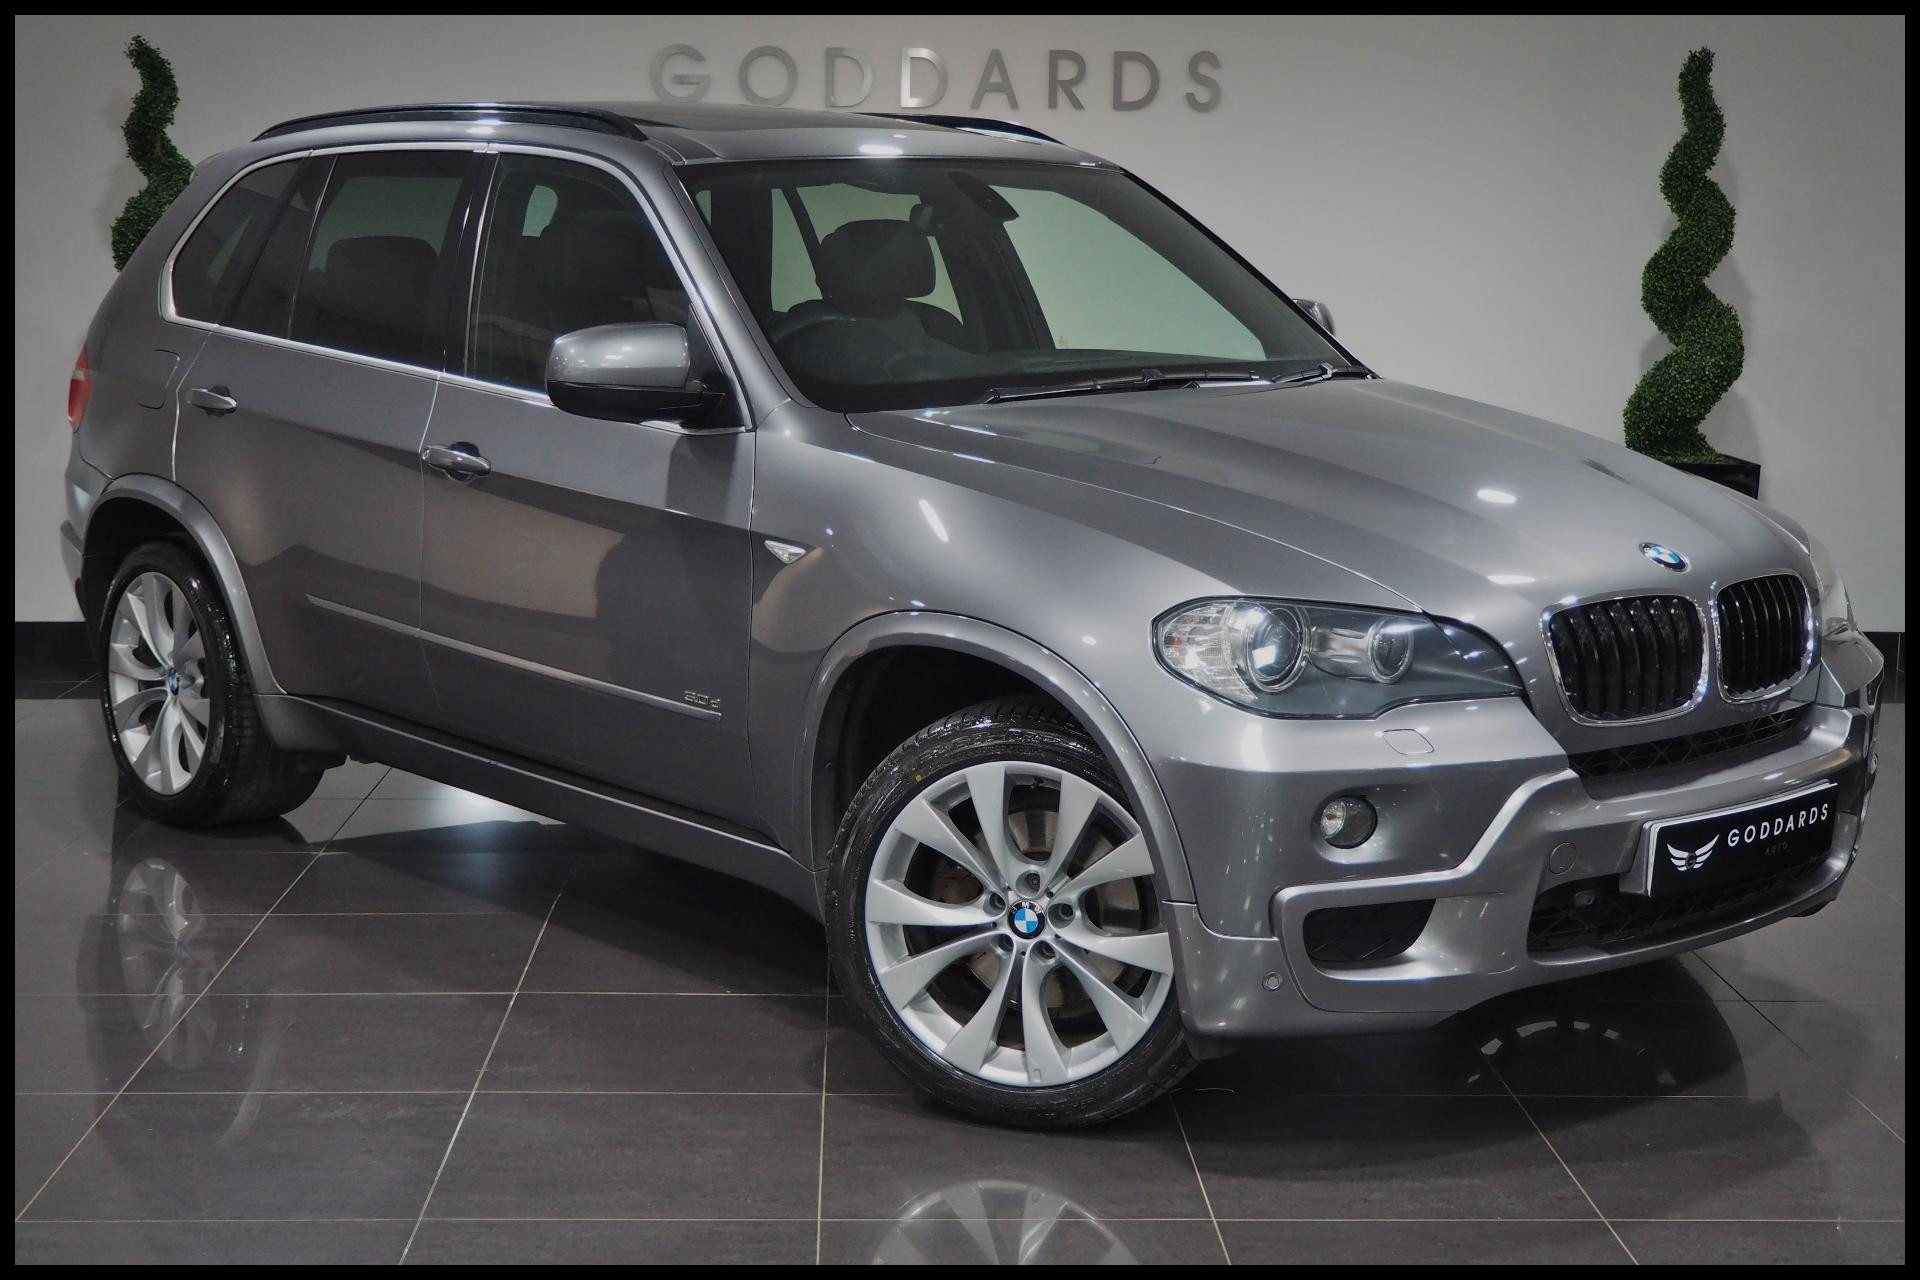 Bmw for Sale In Ny Elegant Bmw Extended Service Contract Cost Fresh Used Bmw X3 2